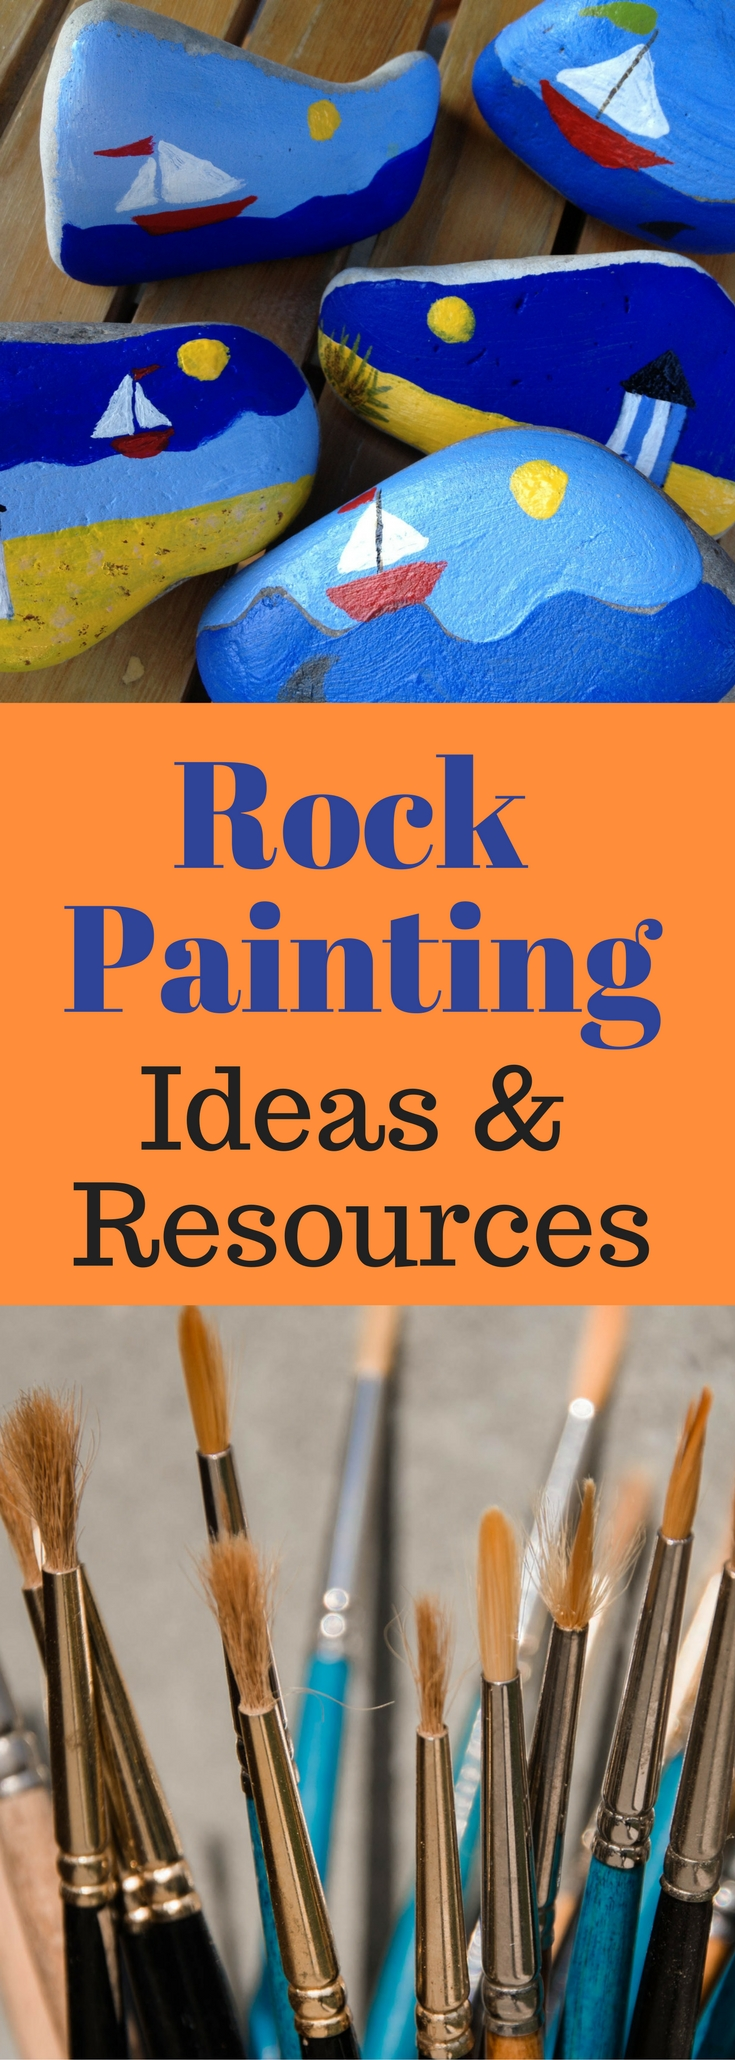 10 Spectacular Ideas Of What To Paint rock painting ideas how to get started rock painting rock and 2020